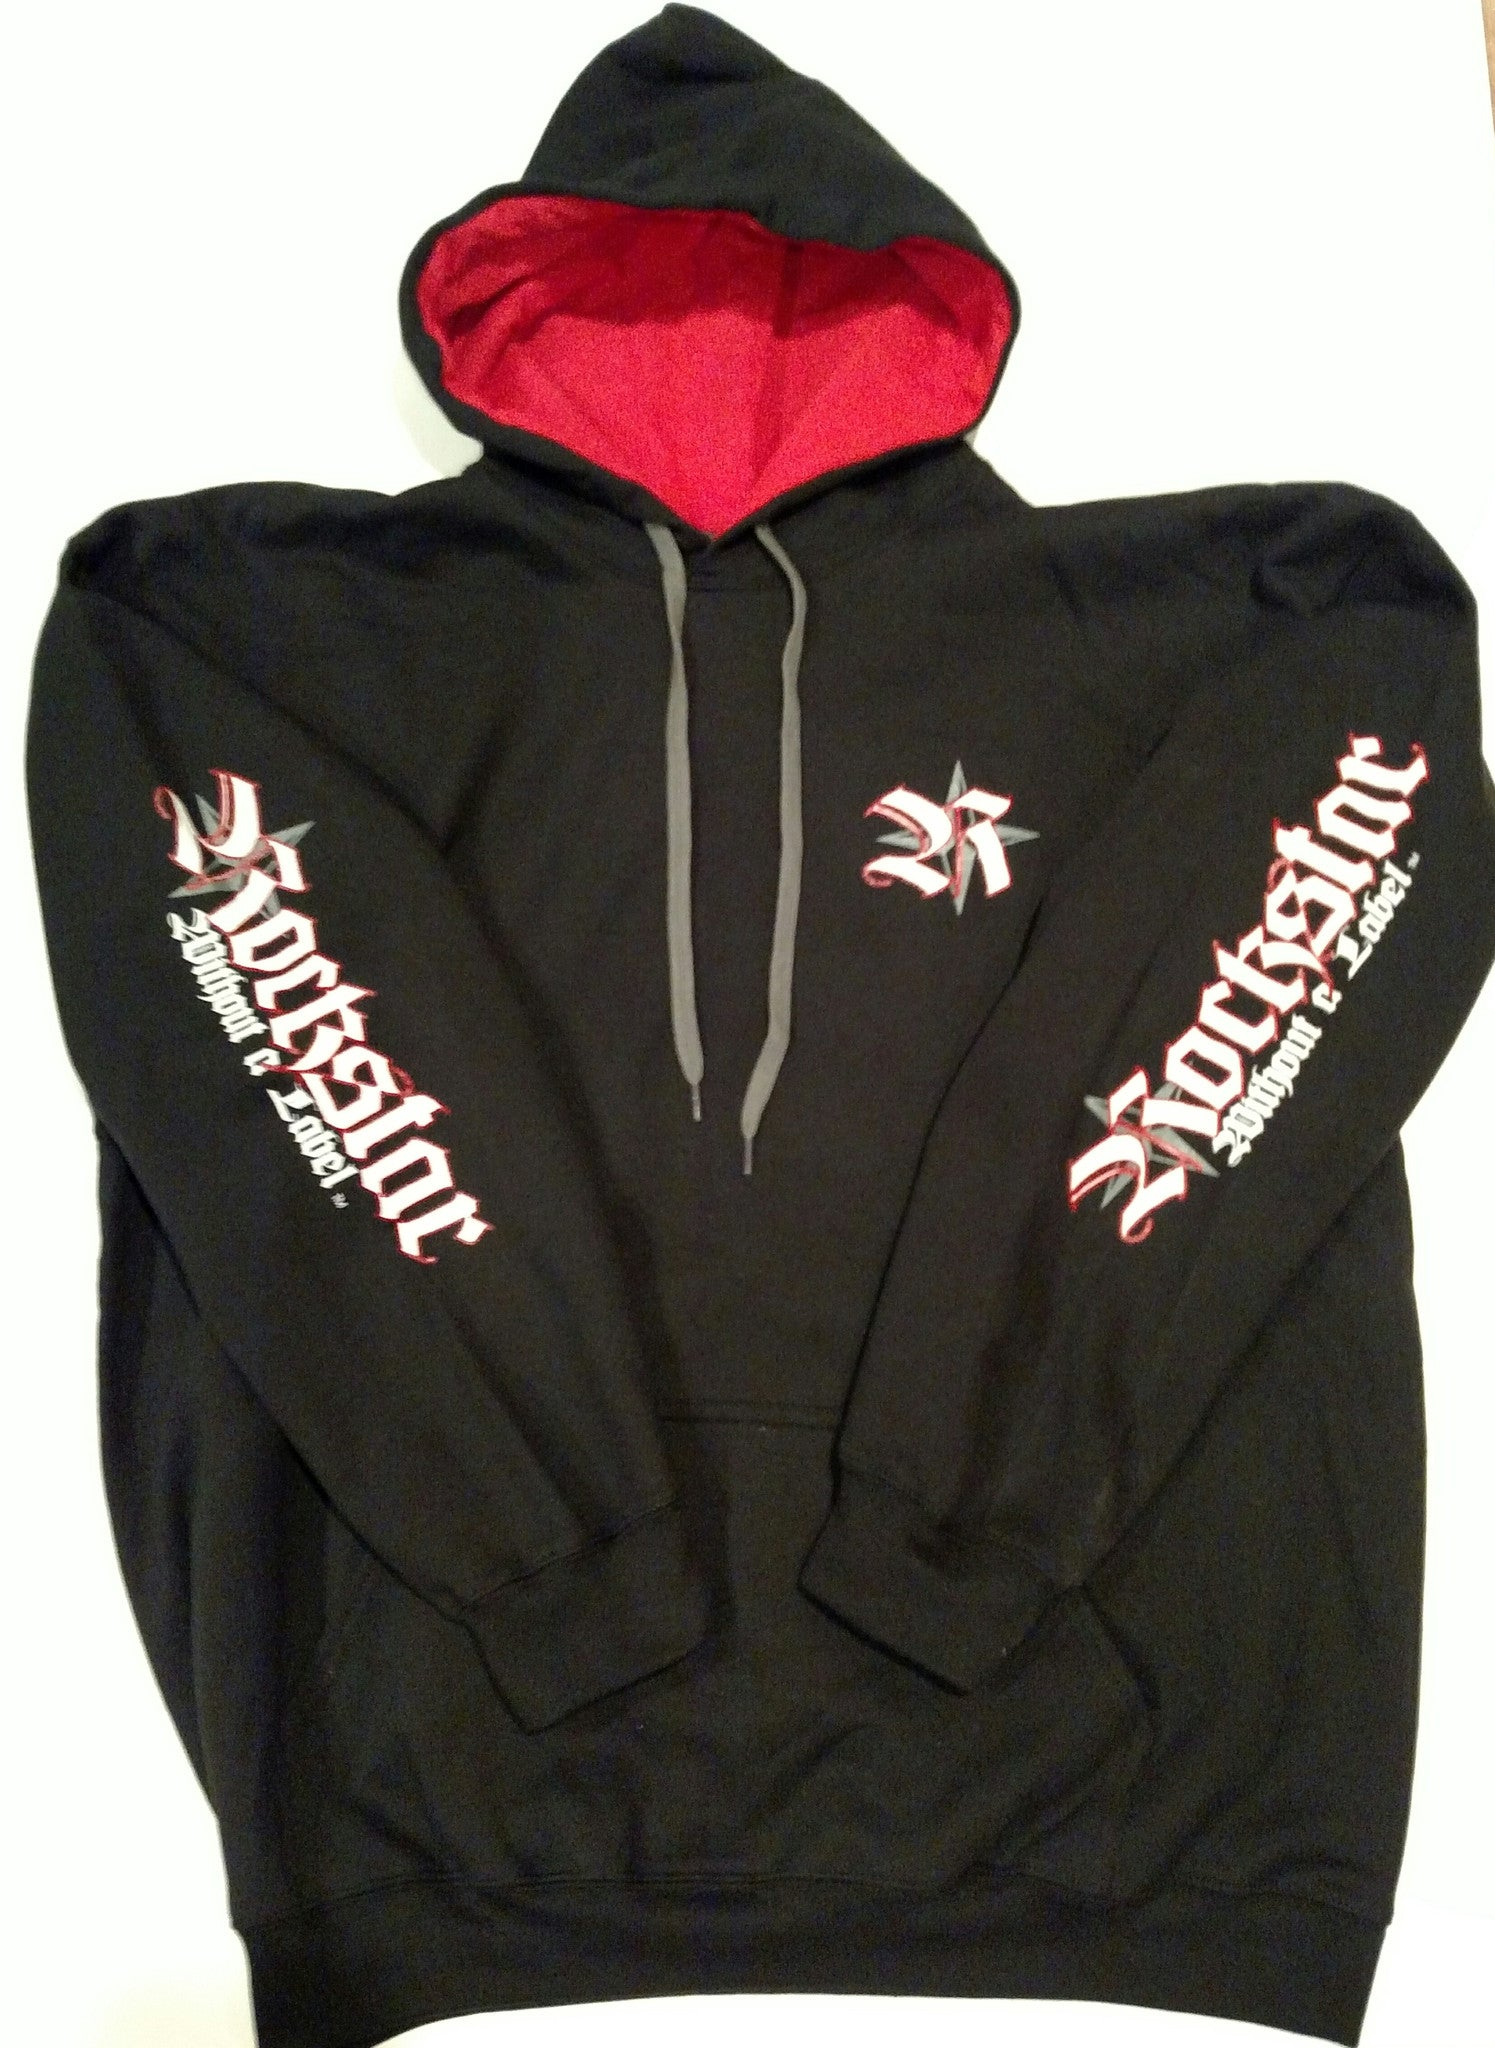 Hoodie New Black with Red inside Hood and Rockstar Without a Label Logo on sleeves and back